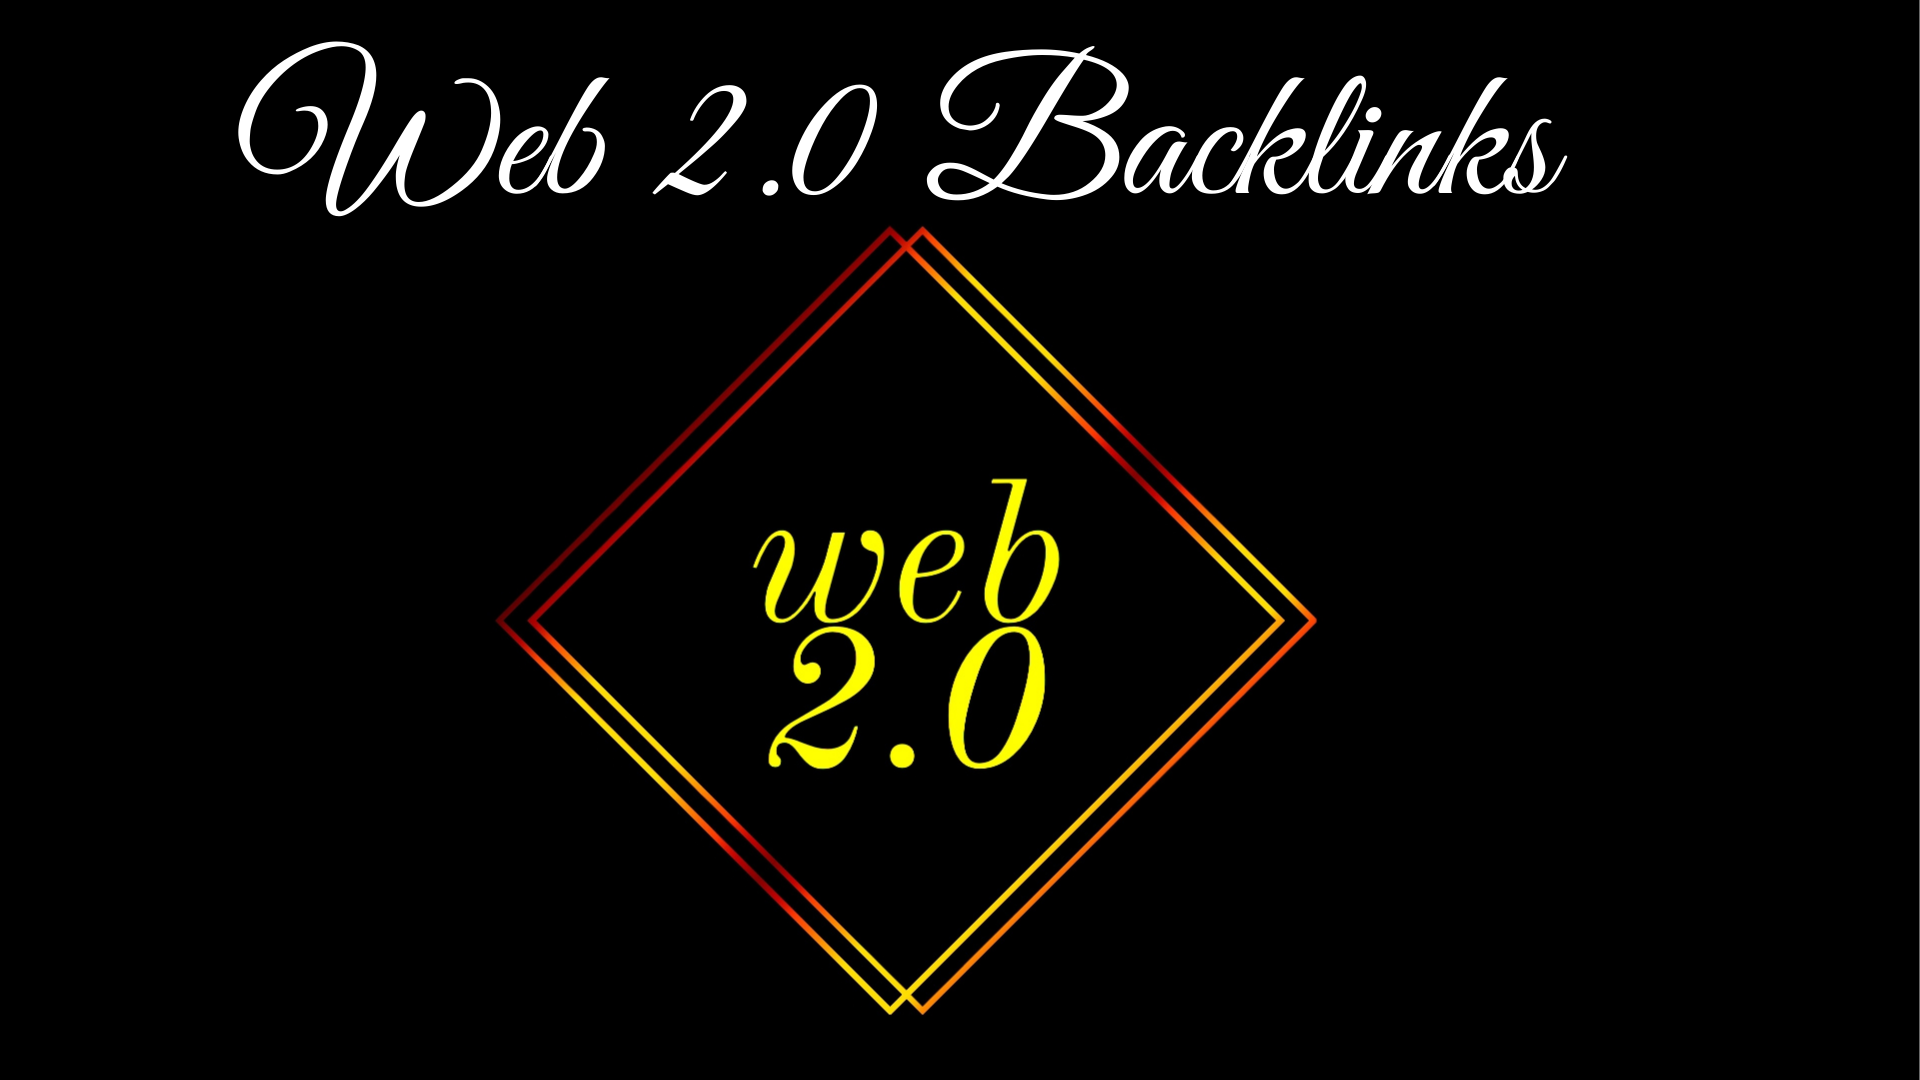 I will build Dofollow high quality 20 permanent super web 2.0 backlinks